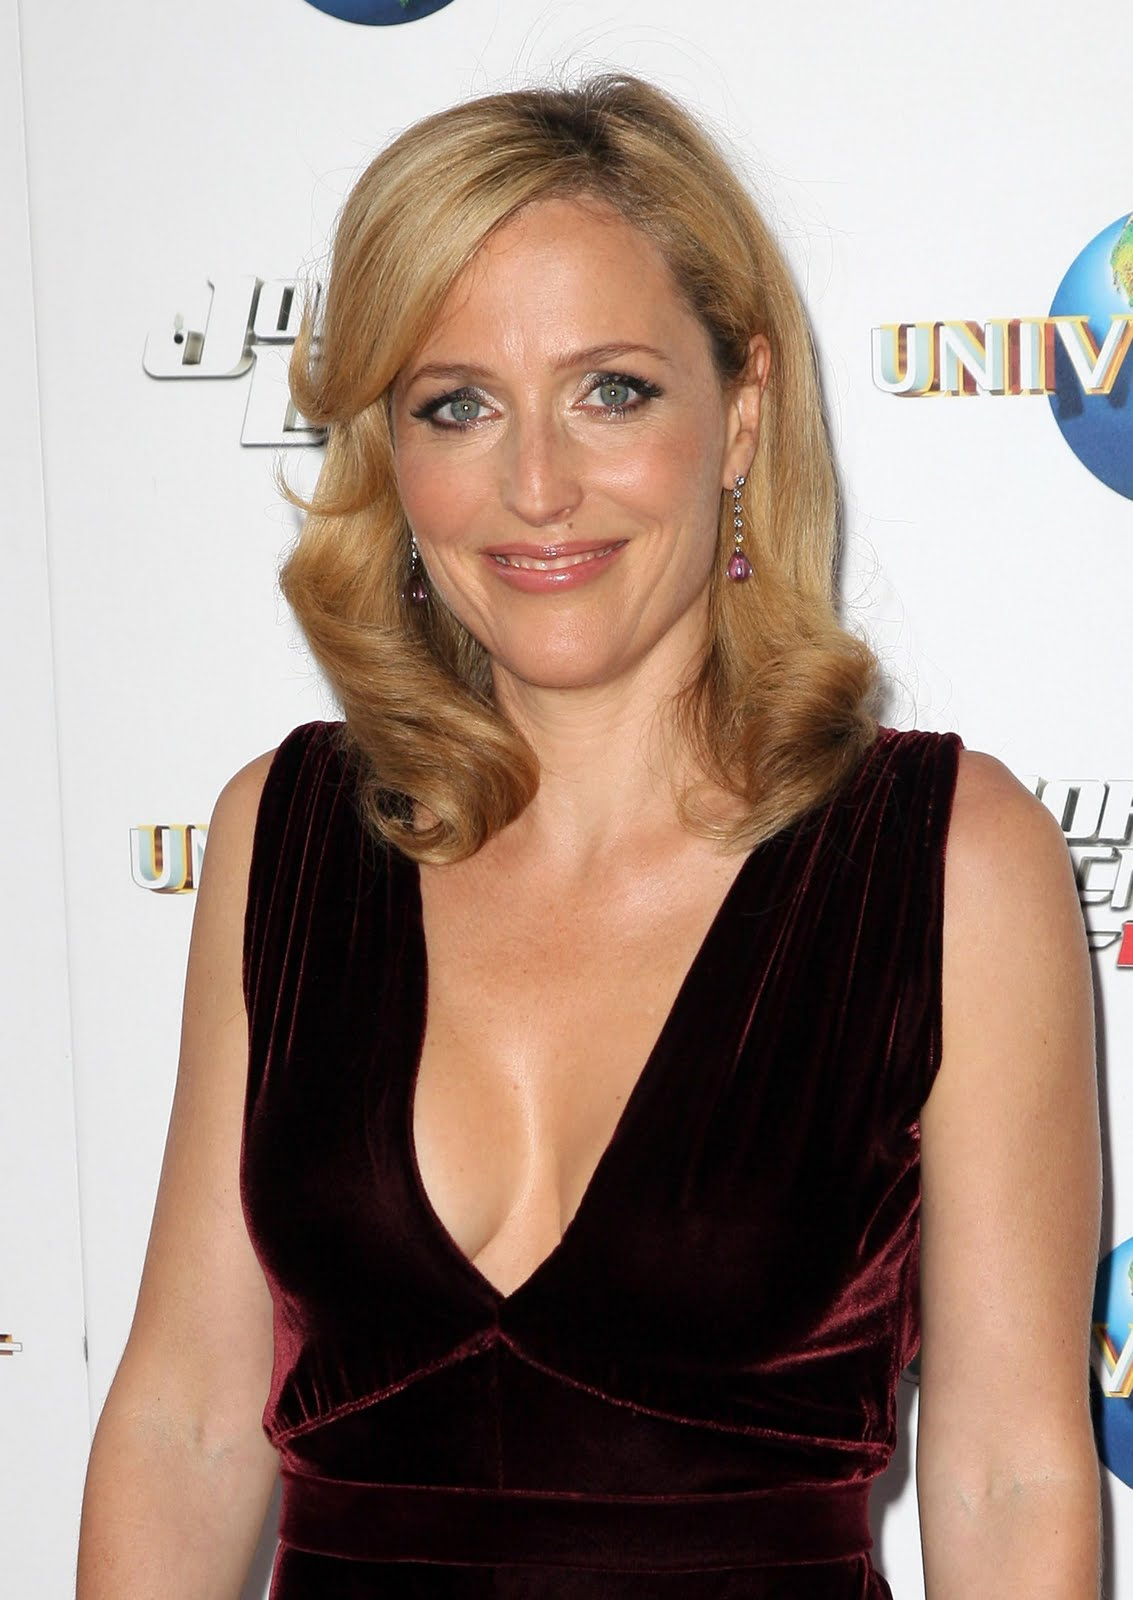 Images4Fun British Celeb Gillian Anderson Still Look Hot -4150